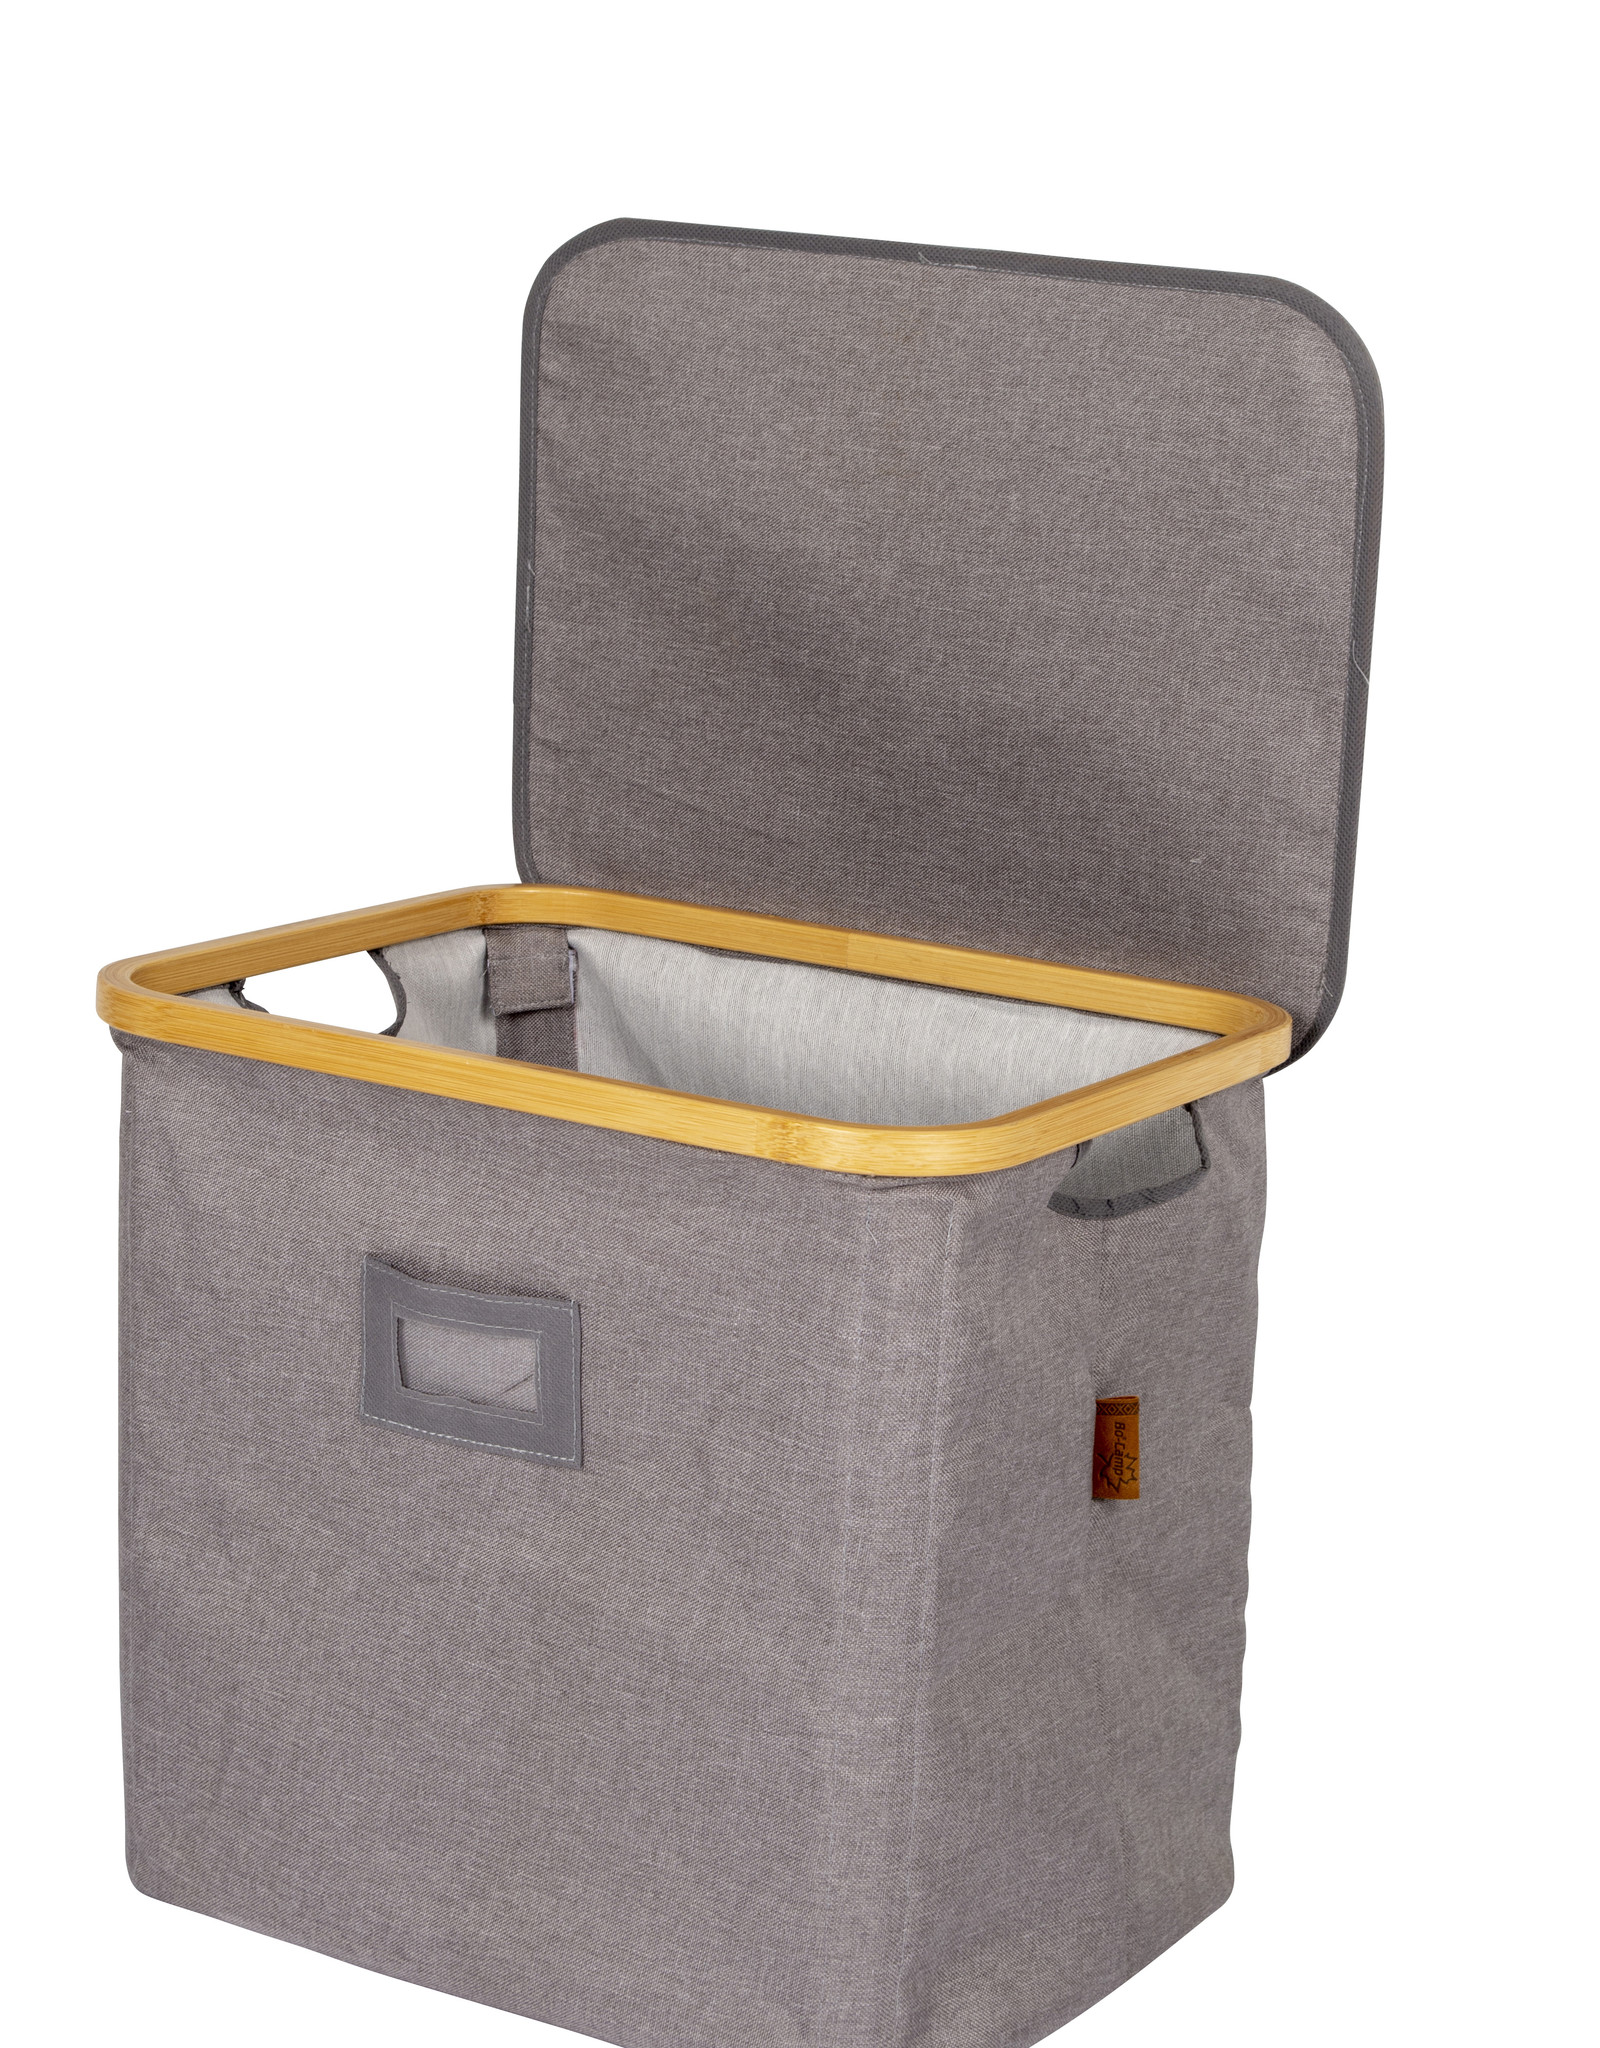 Bo-Camp Storeditch laundry basket BoCamp Urban Collection